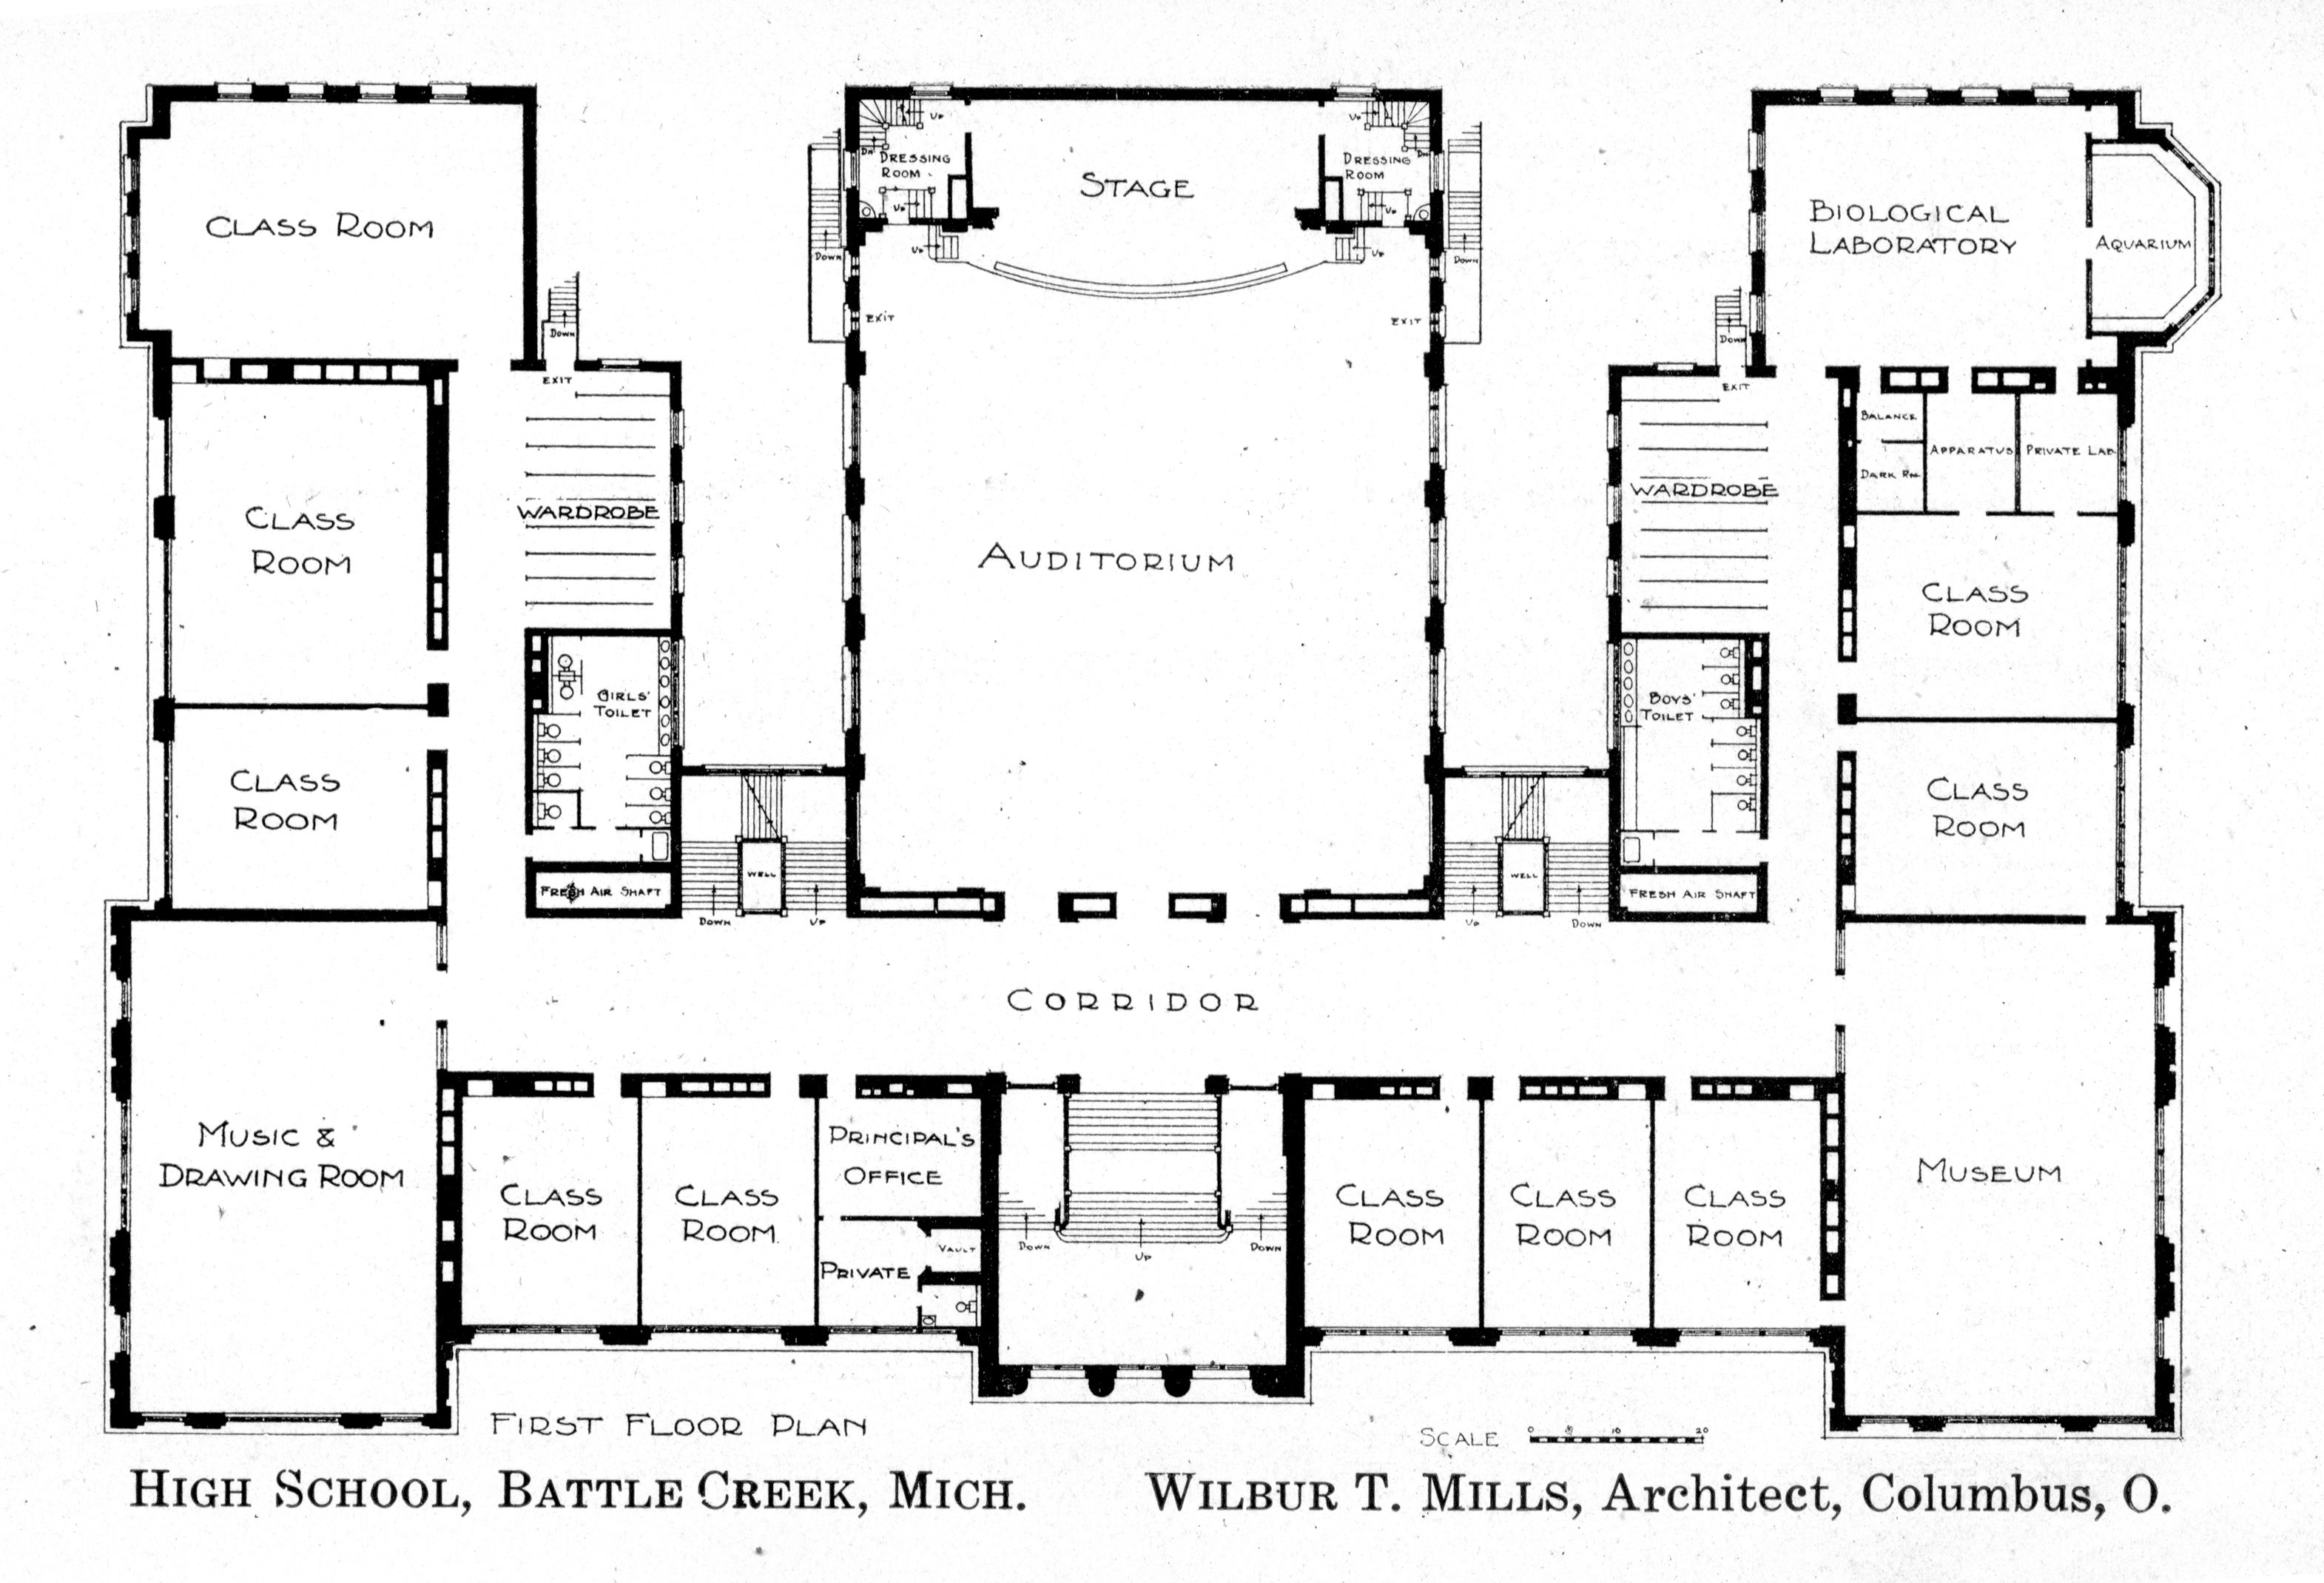 Elementary school building design plans the blueprint and floor elementary school building design plans the blueprint and floor plan to the thomas edison elementary school in school building designs pinterest malvernweather Choice Image